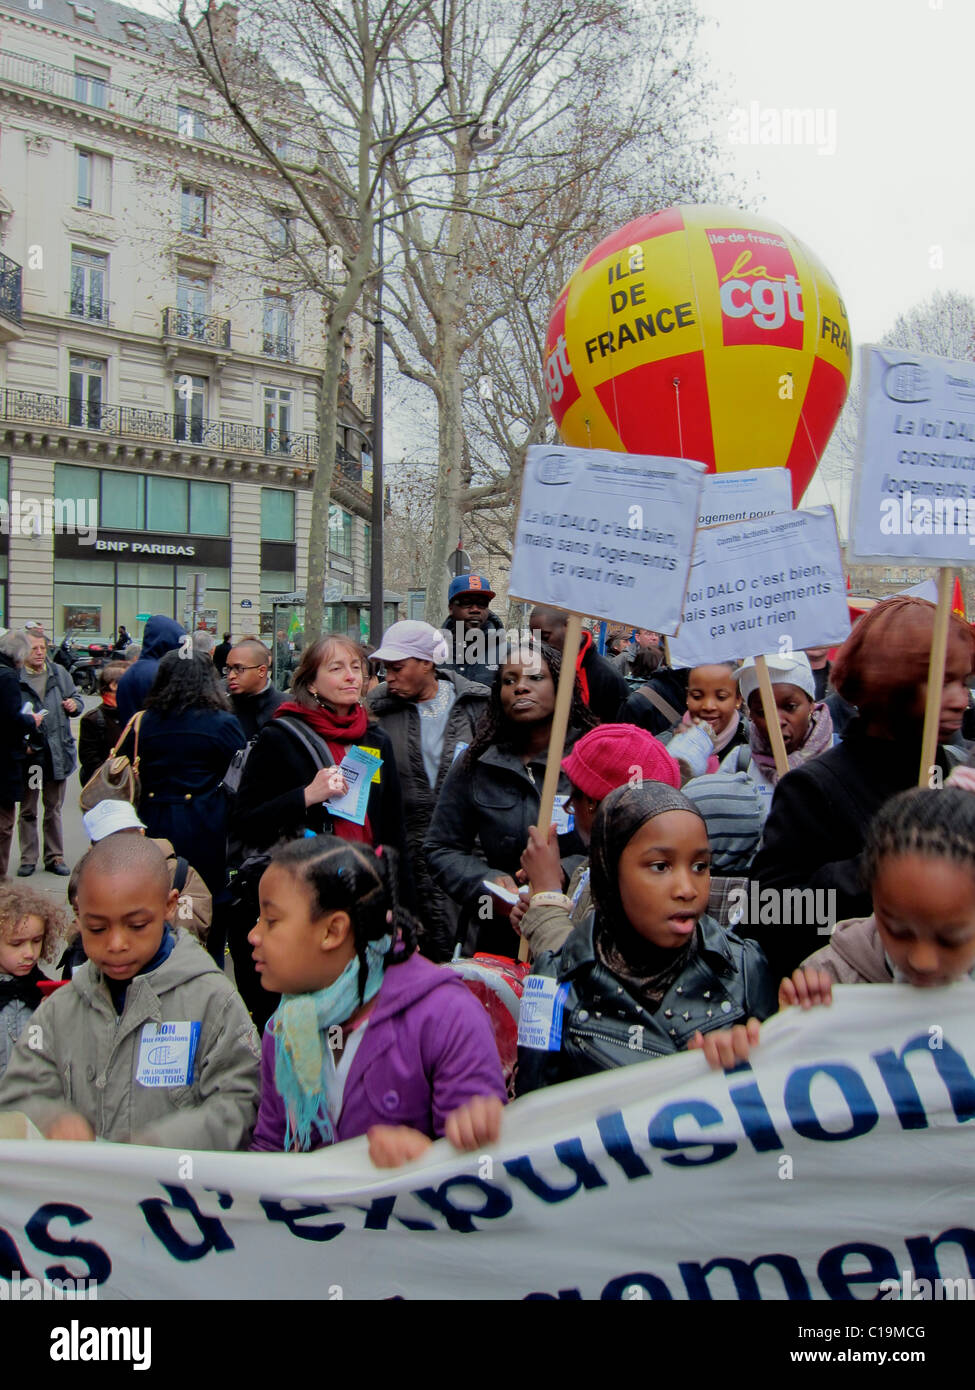 Paris, France, Crowd African Migrant Families, NGO, Demonstration Protesting Forced Housing Expulsions, Children - Stock Image